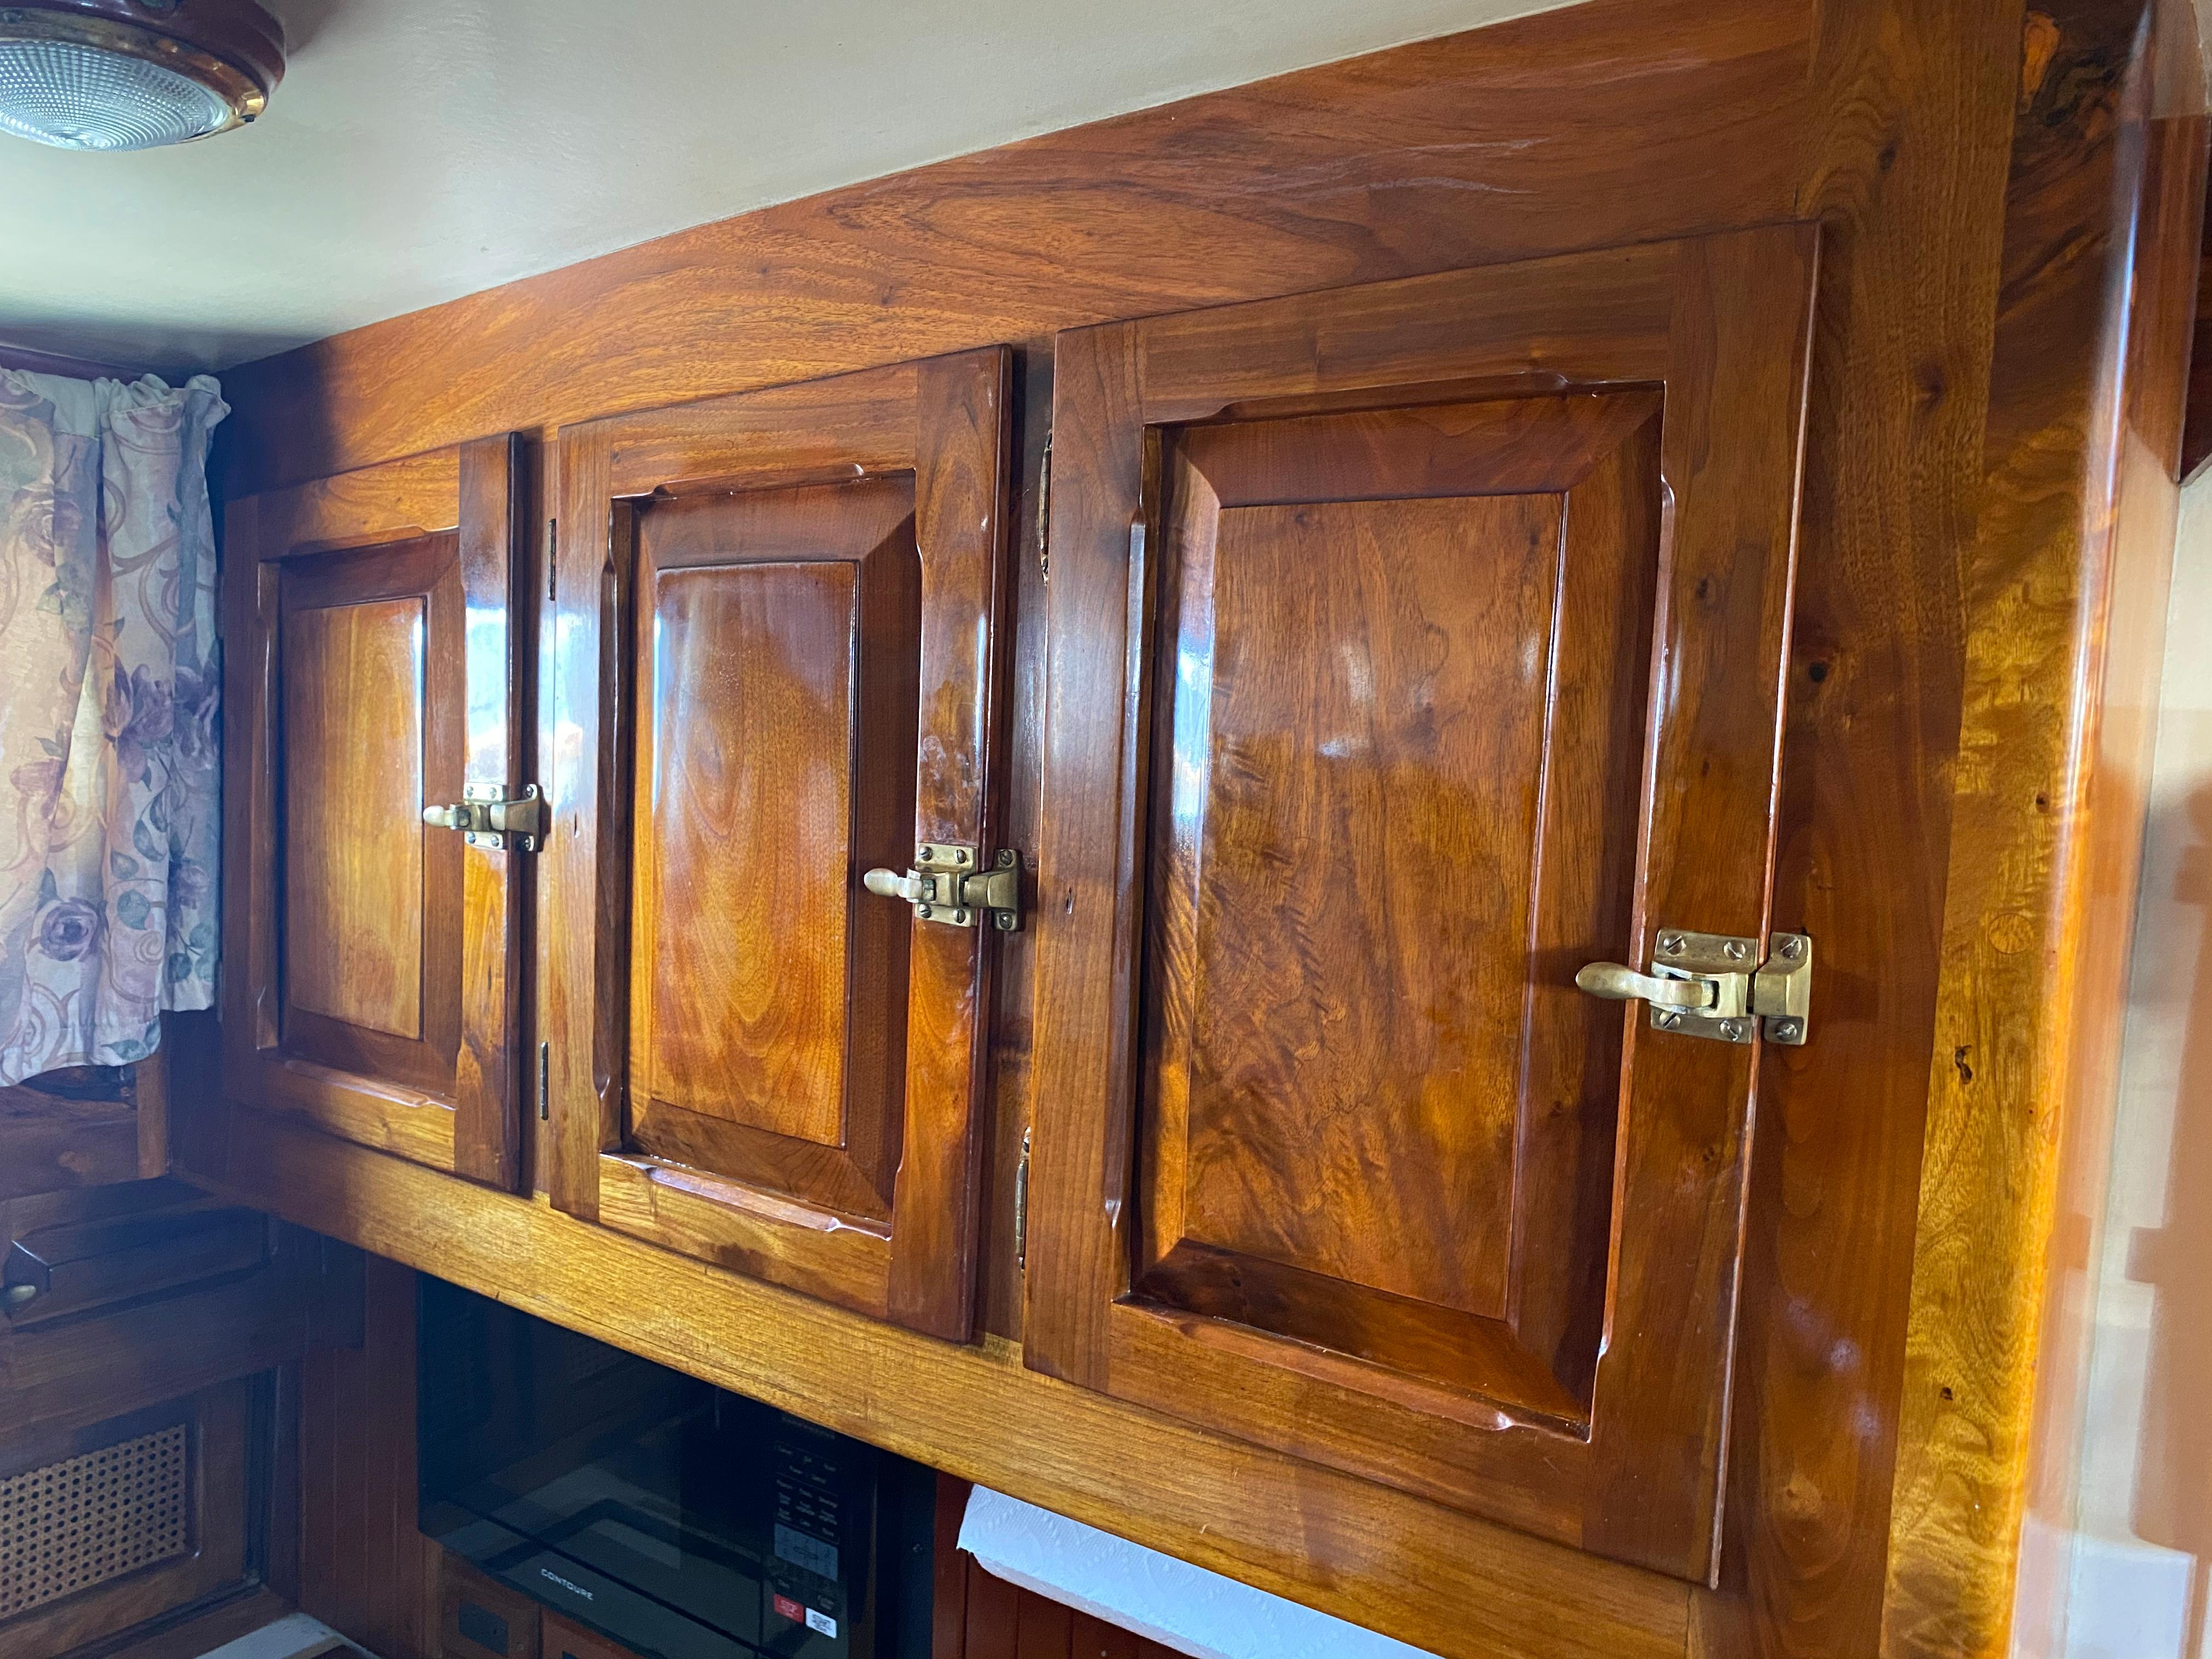 Galley Cabinetry Detail